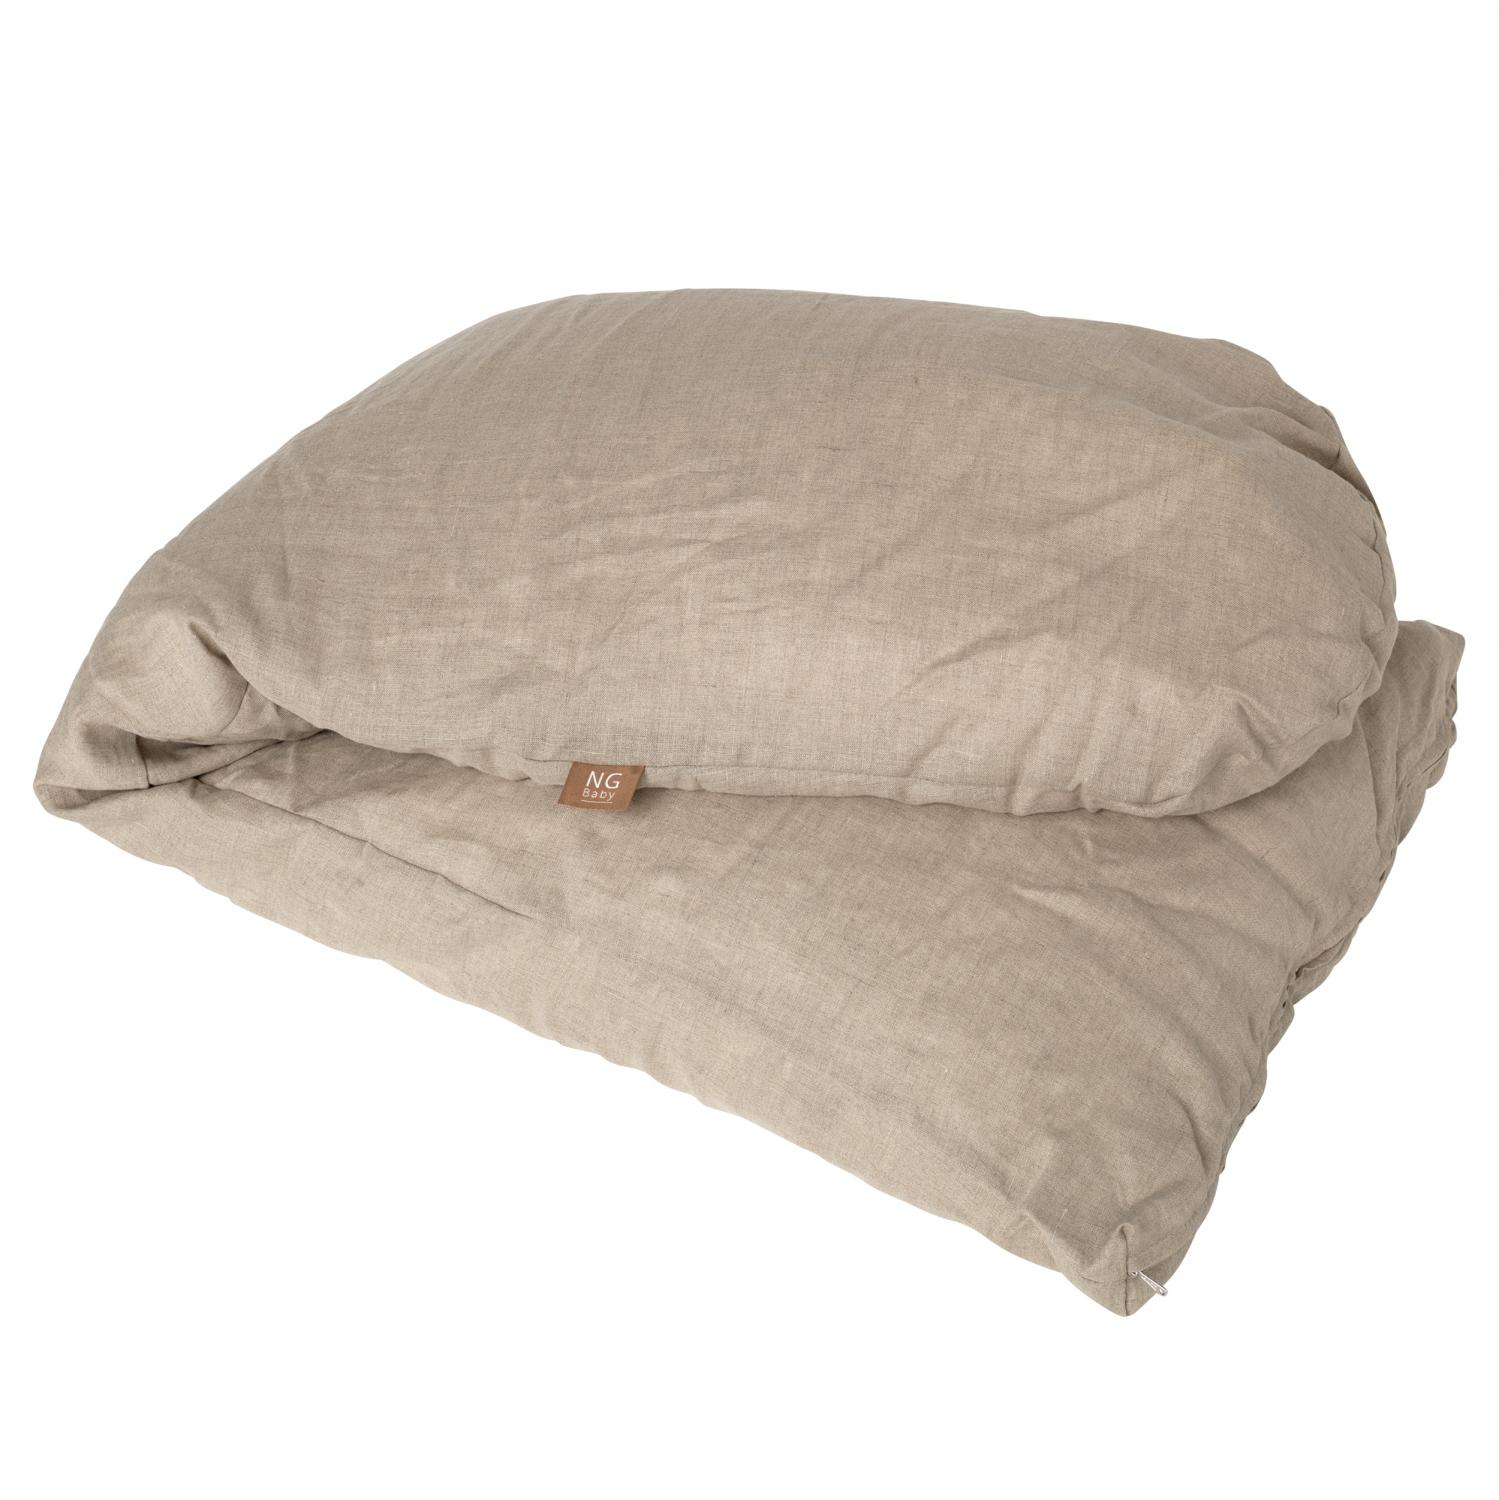 Maternity pillow | Natural | Mood